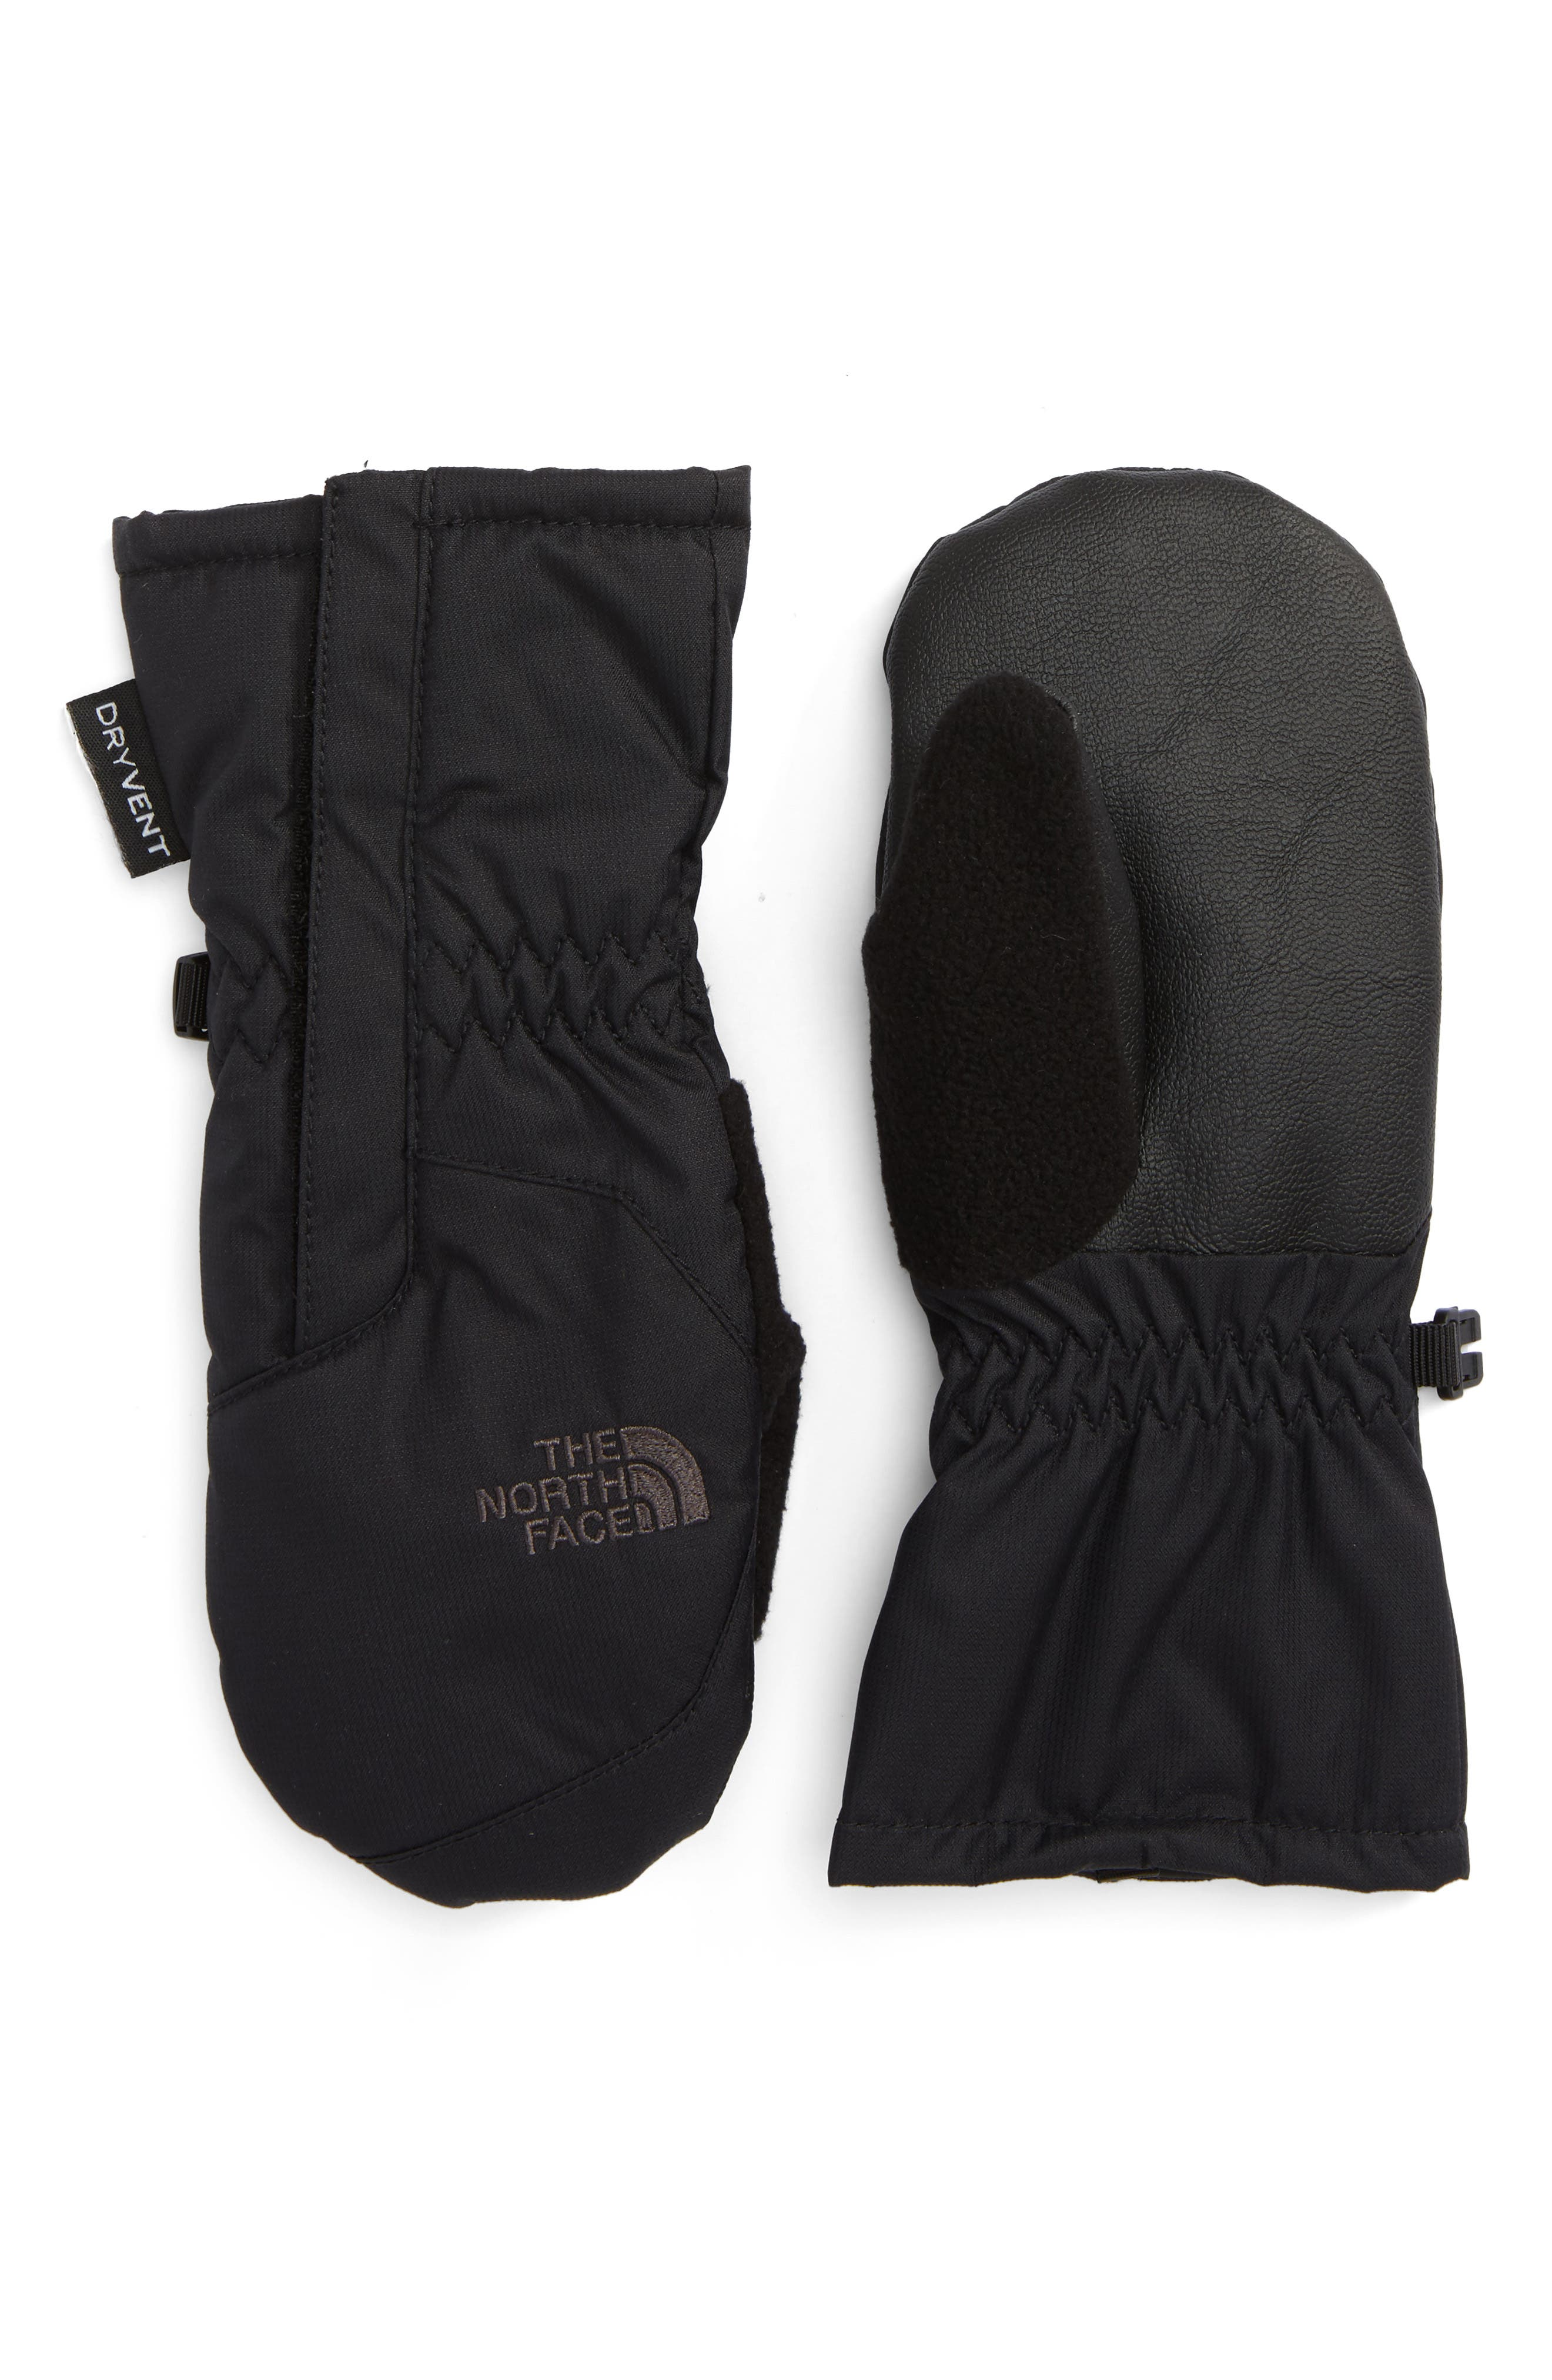 Main Image - The North Face Heatseeker™ Insulated Mittens (Toddler Kids)